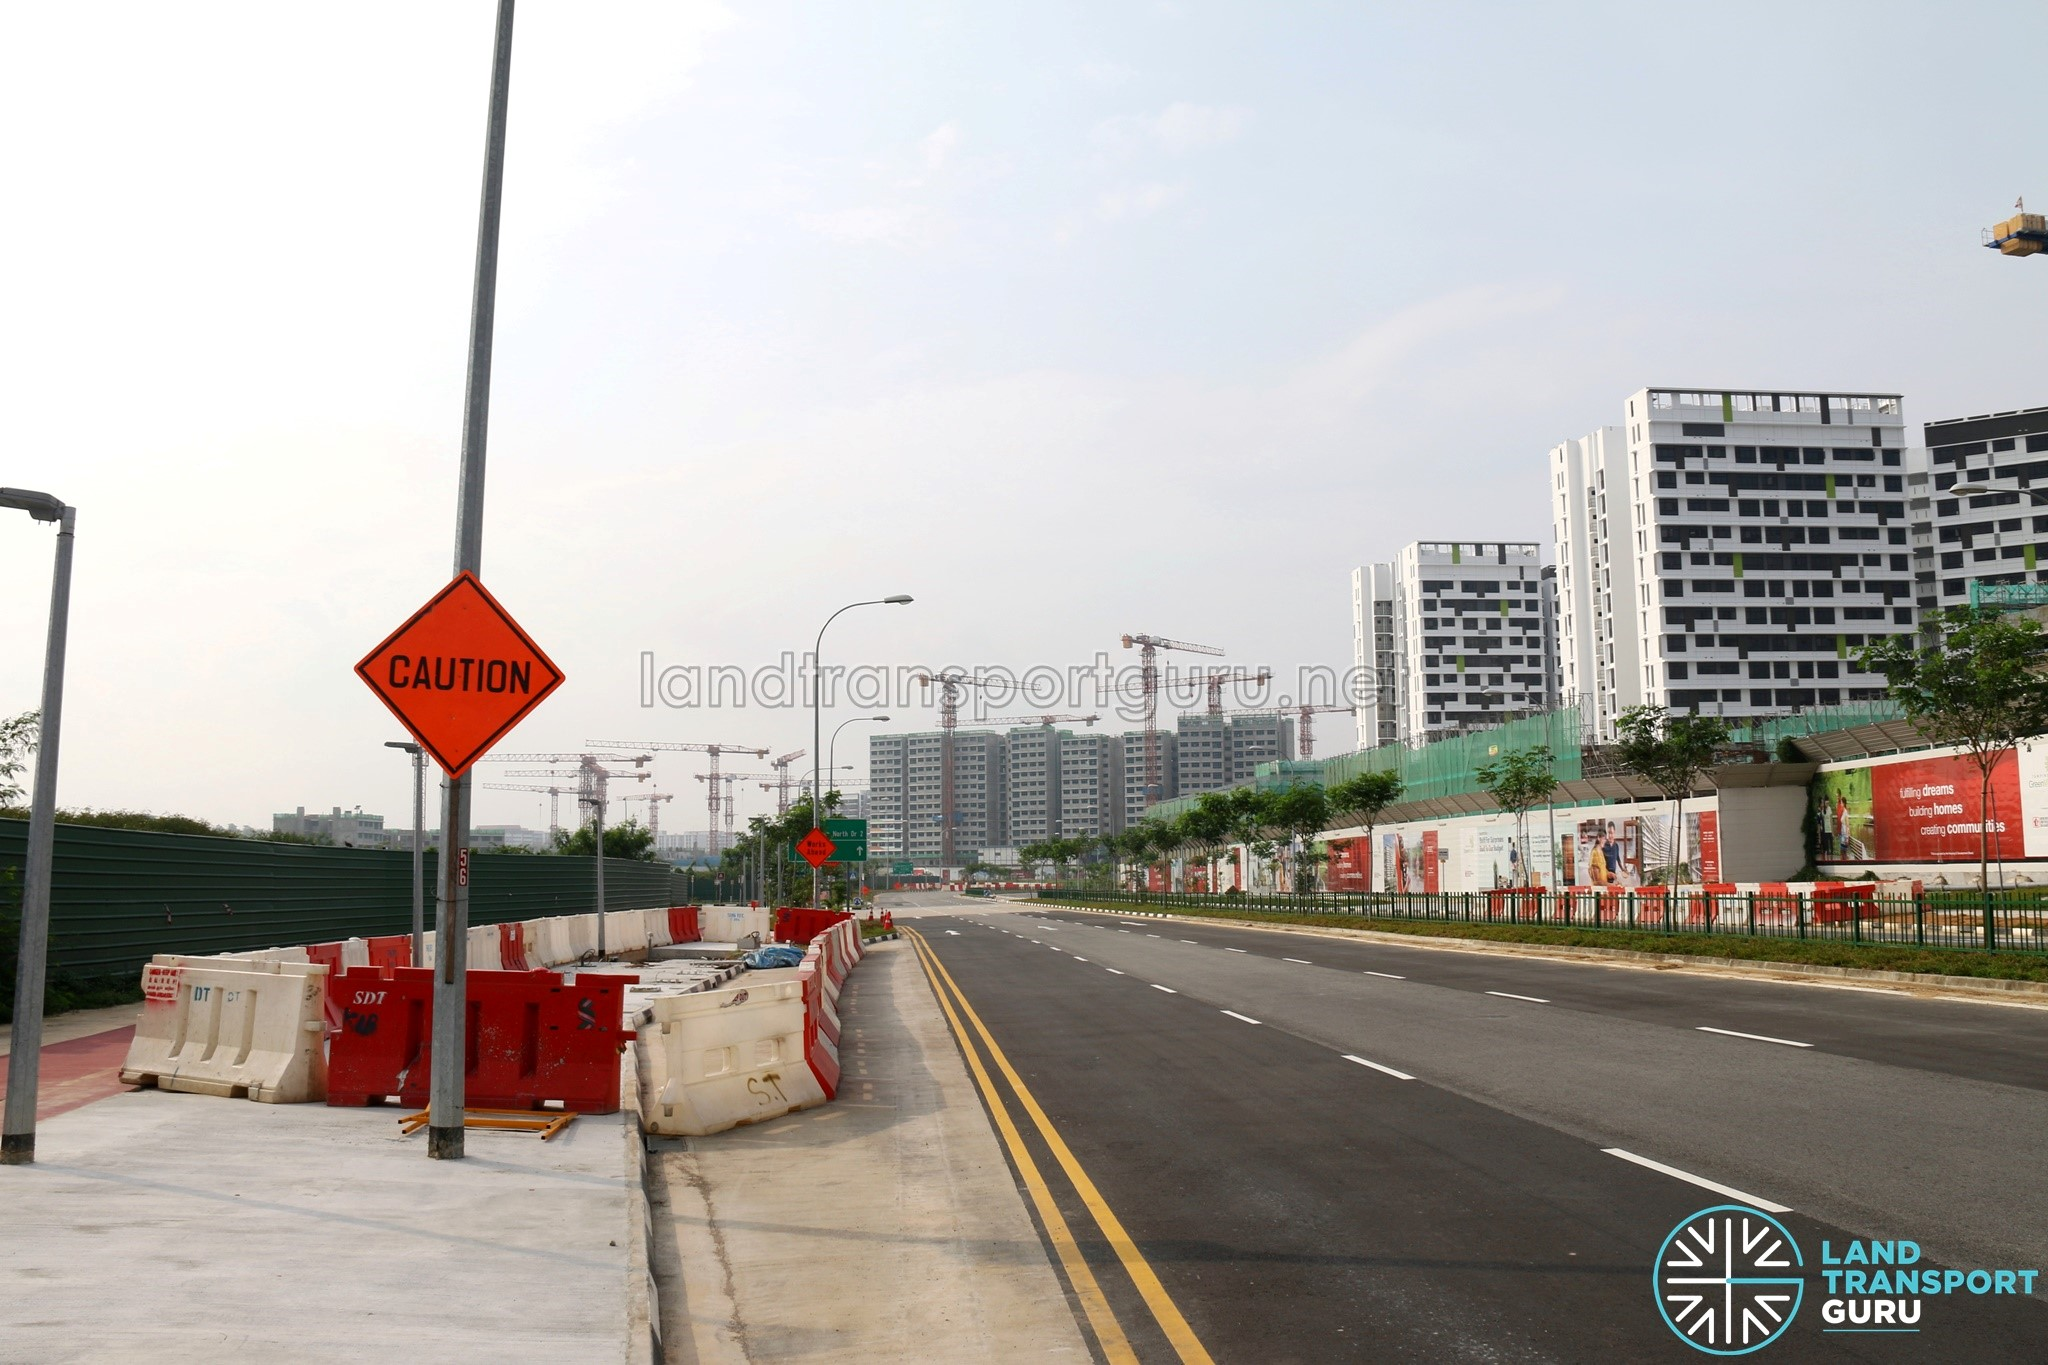 Bus Stop Provisions for Service 68 at Tampines Avenue 6